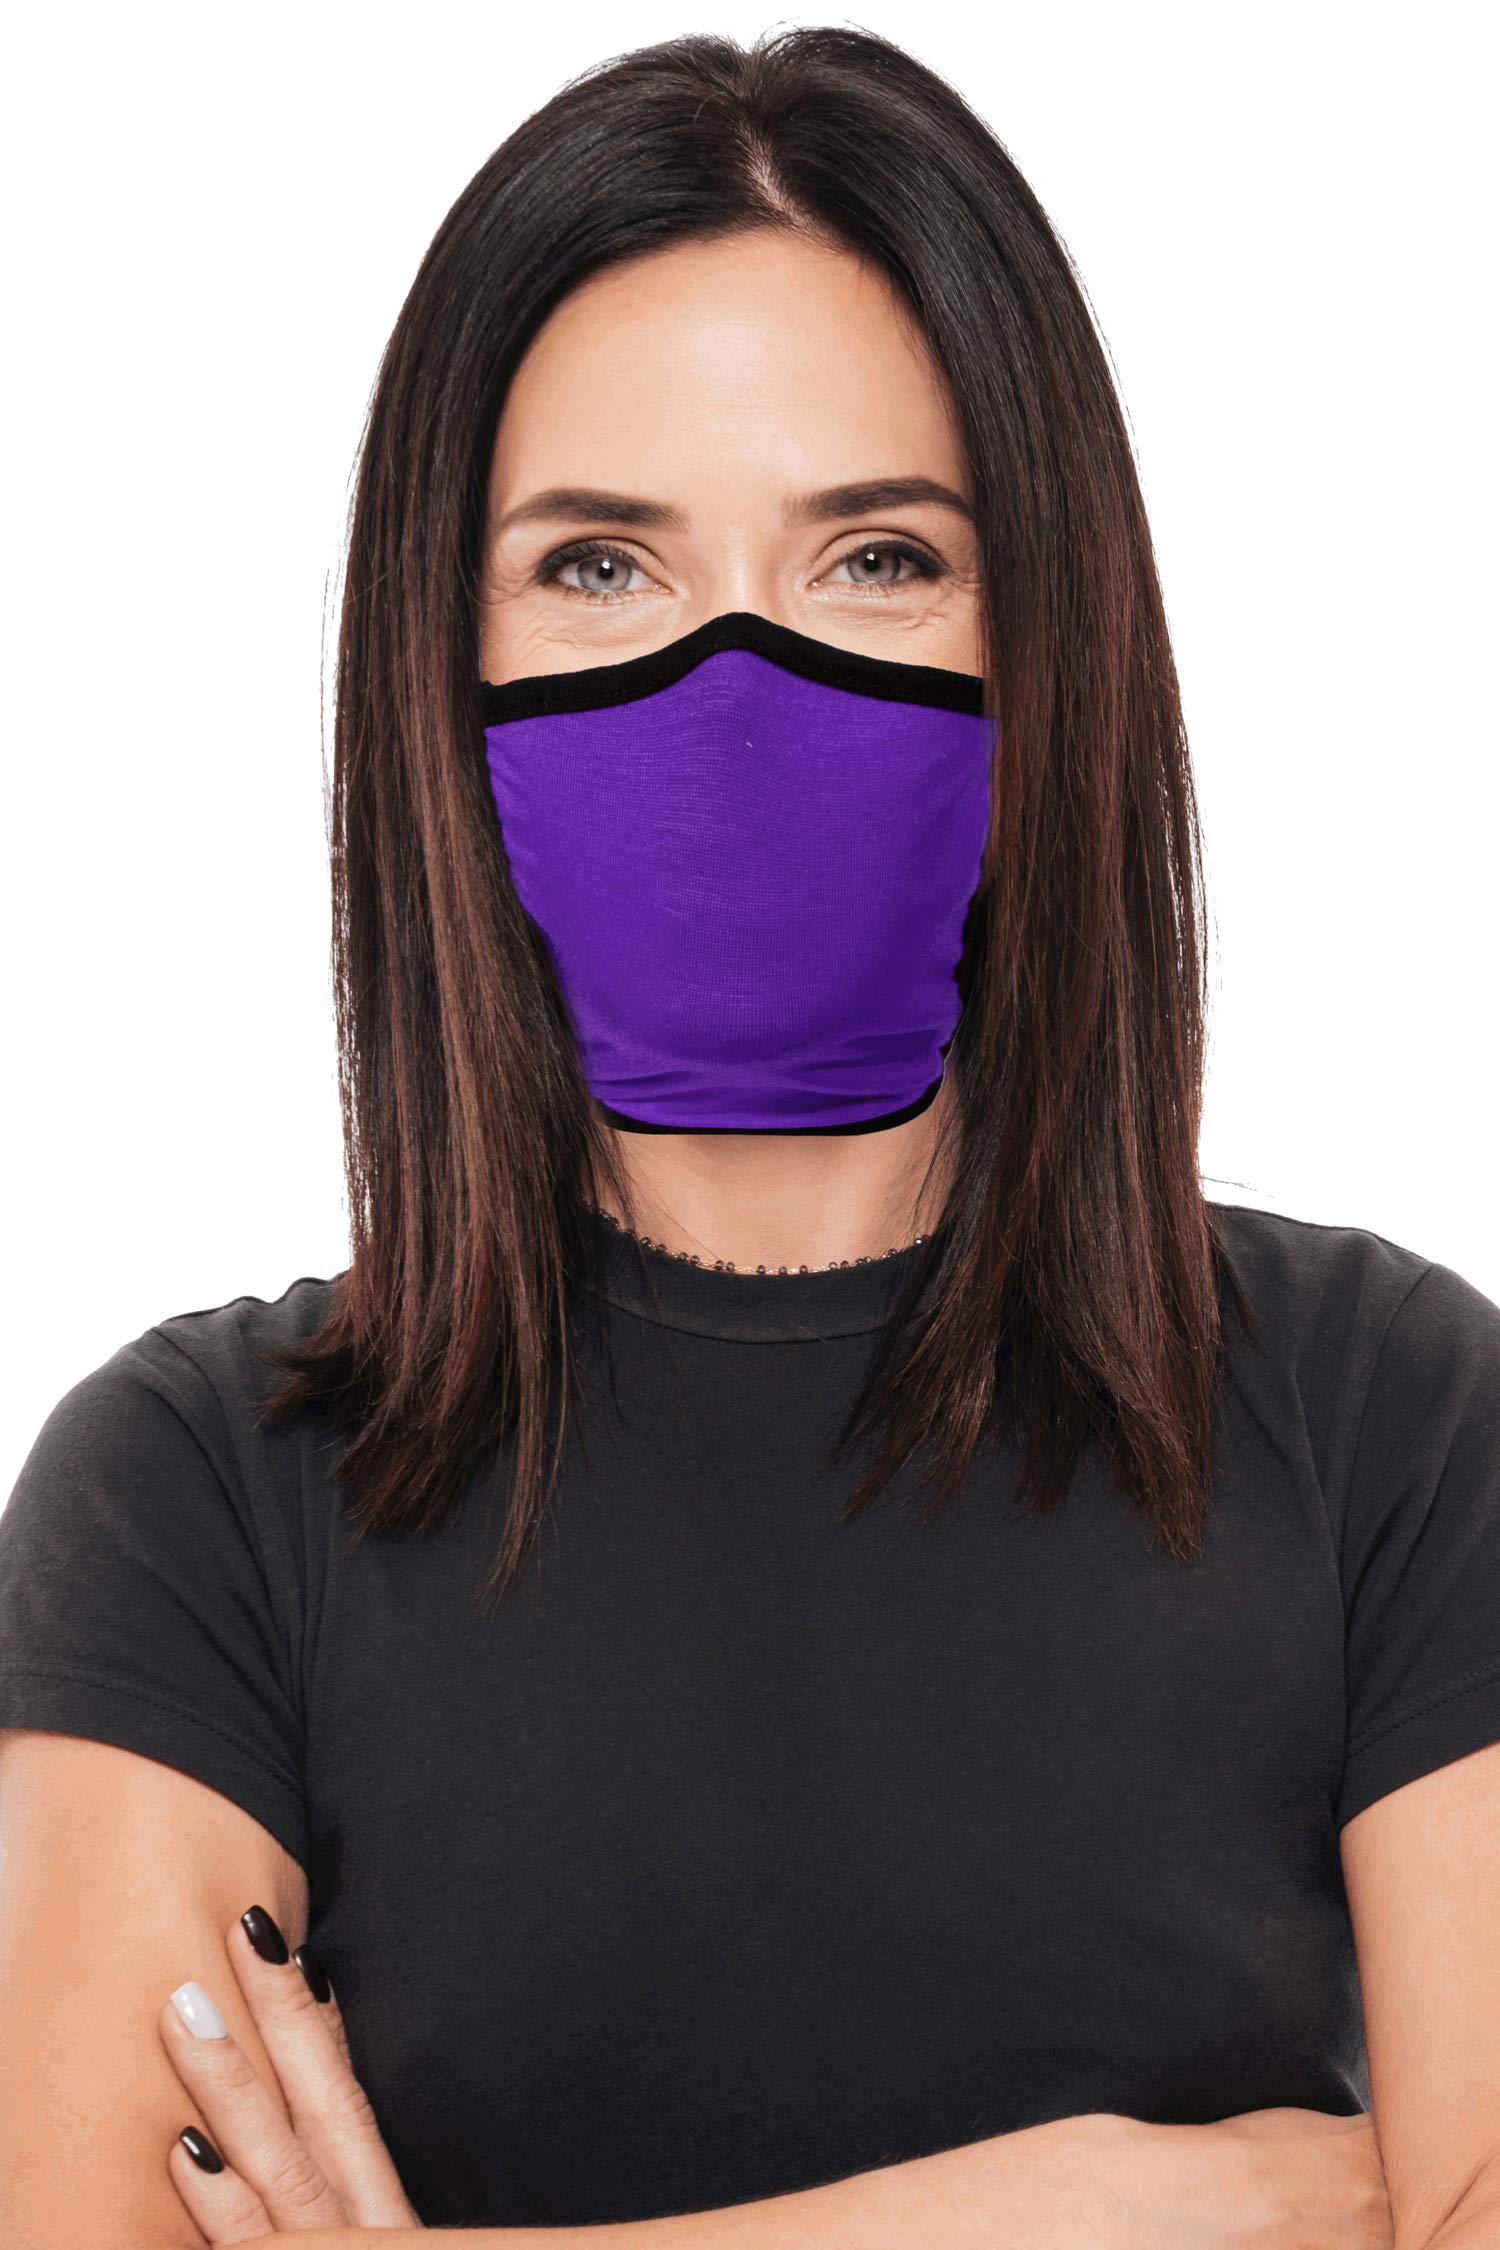 FREE 2 DAY SHIPPING Face Covering 2 Pack Adult Reversible Double Layer Knit Washable and Reusable made in USA